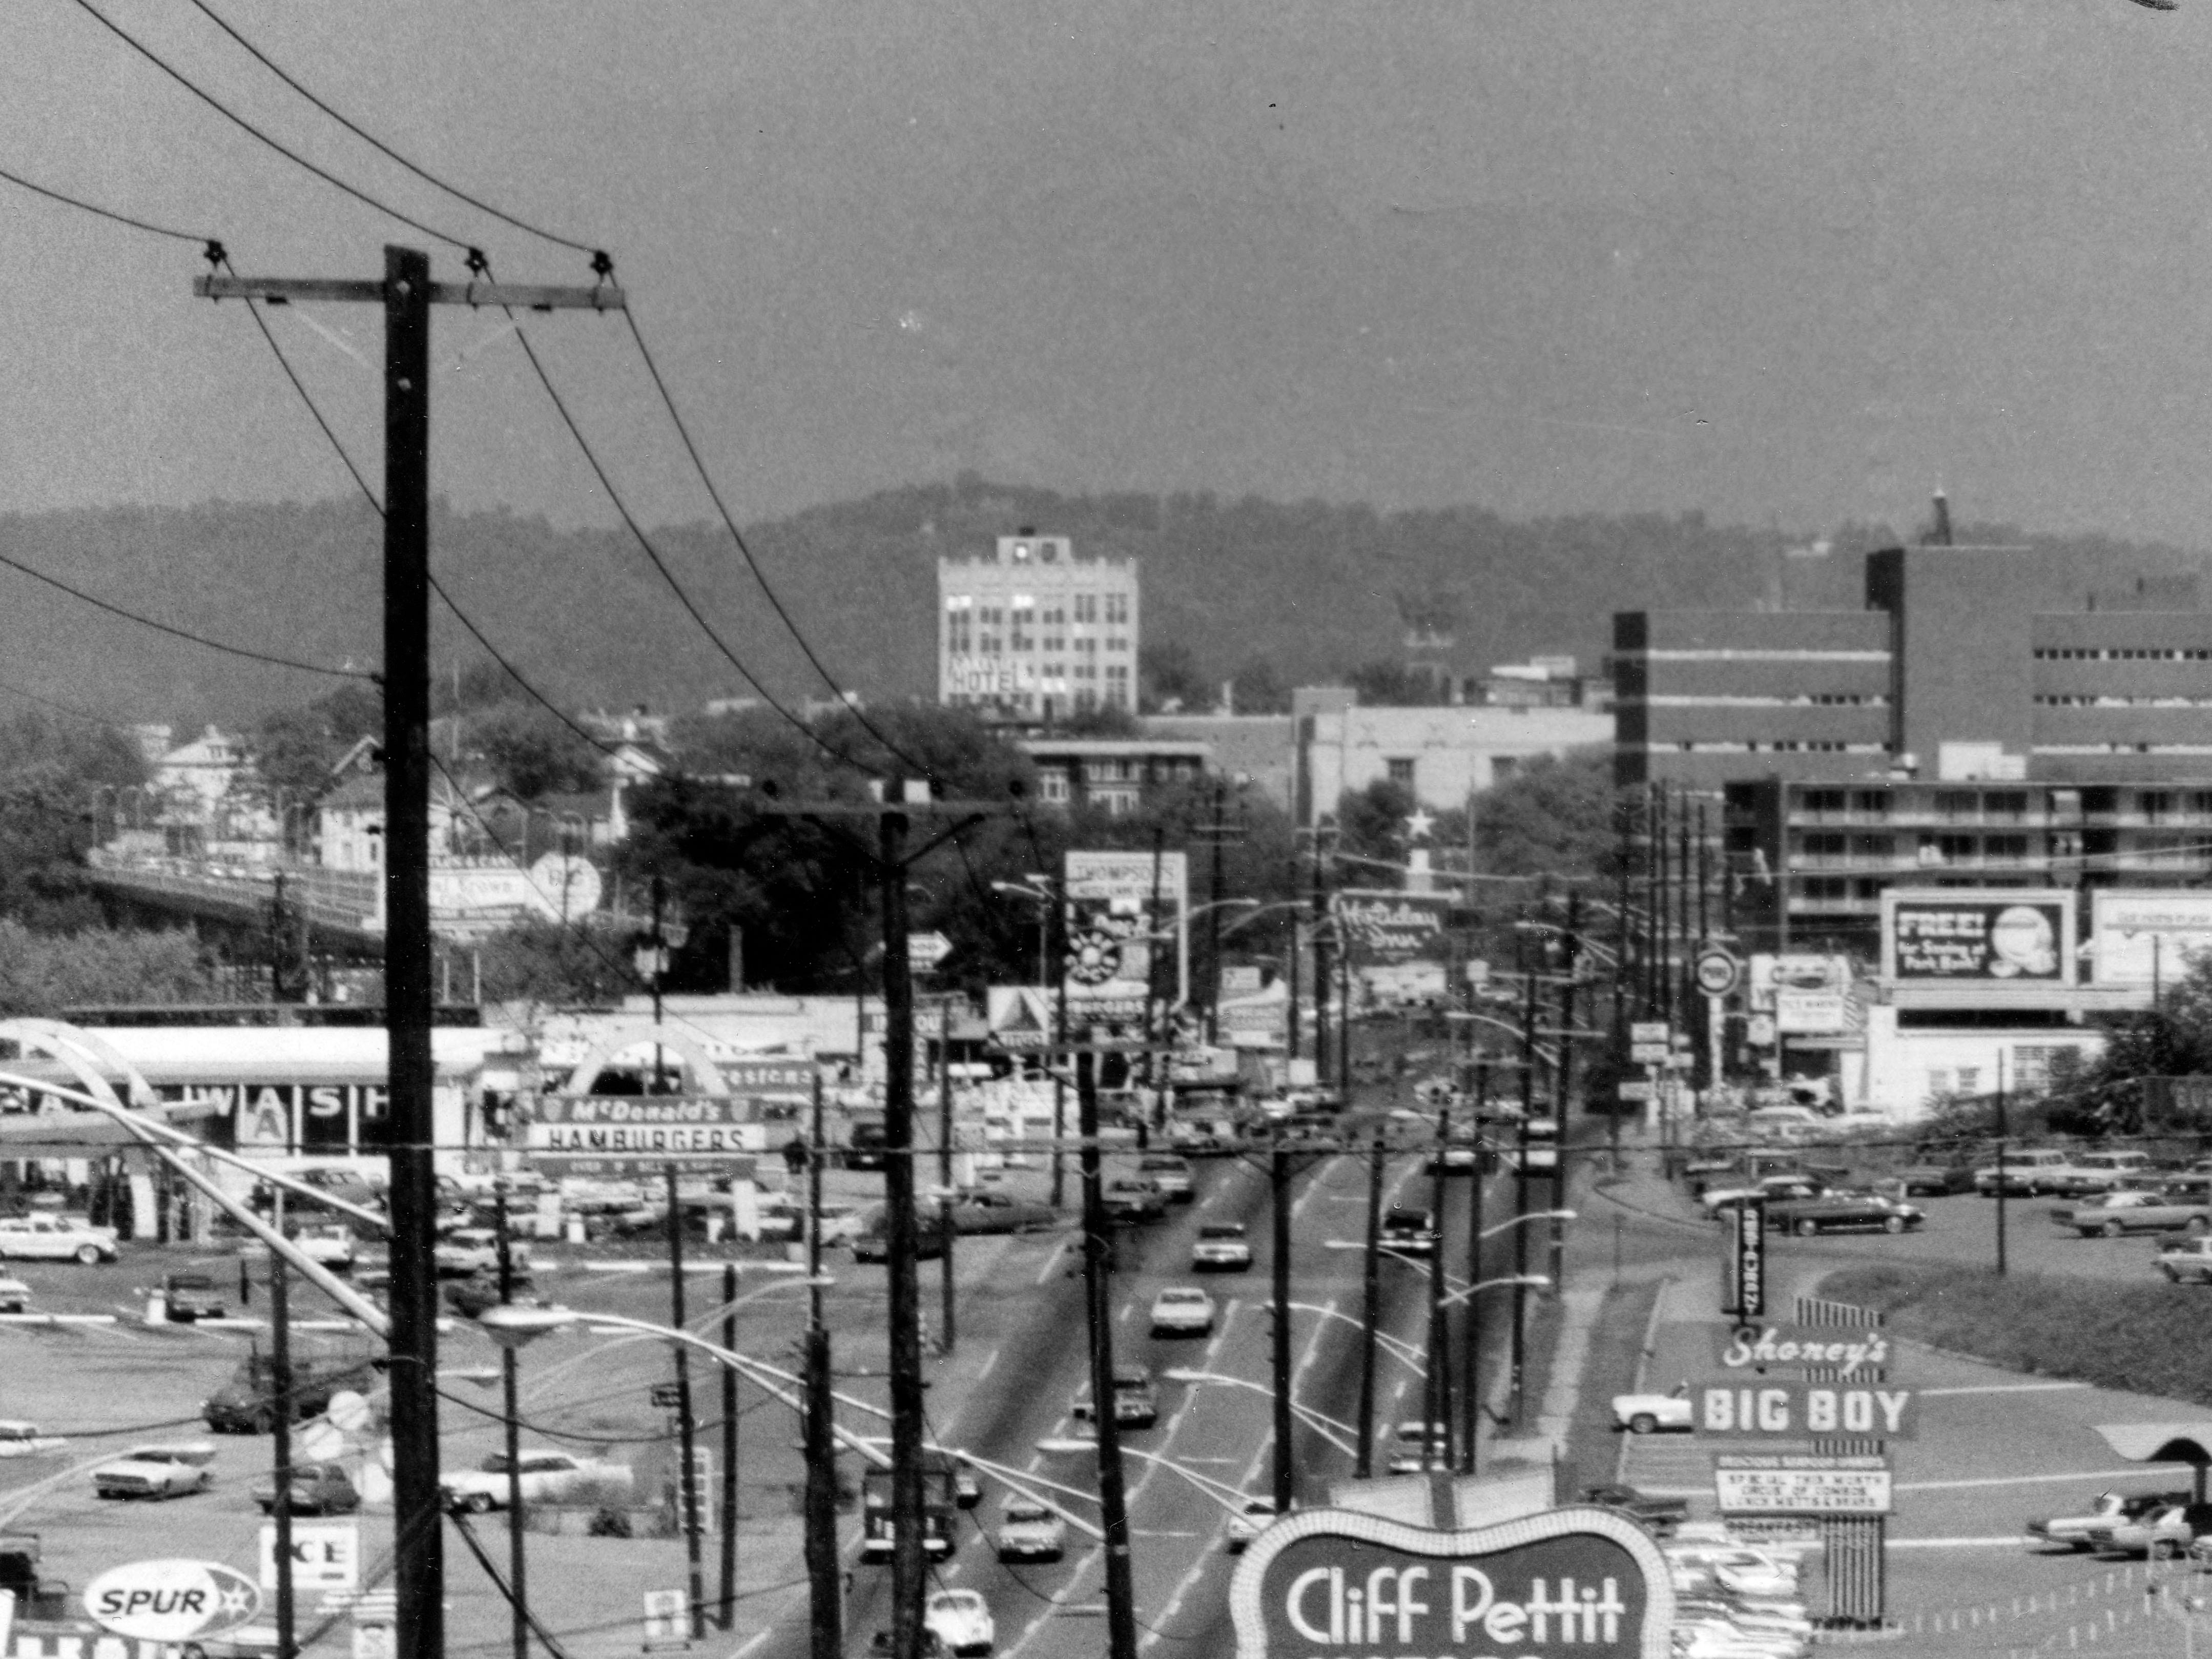 Chapman Highway in 1969.